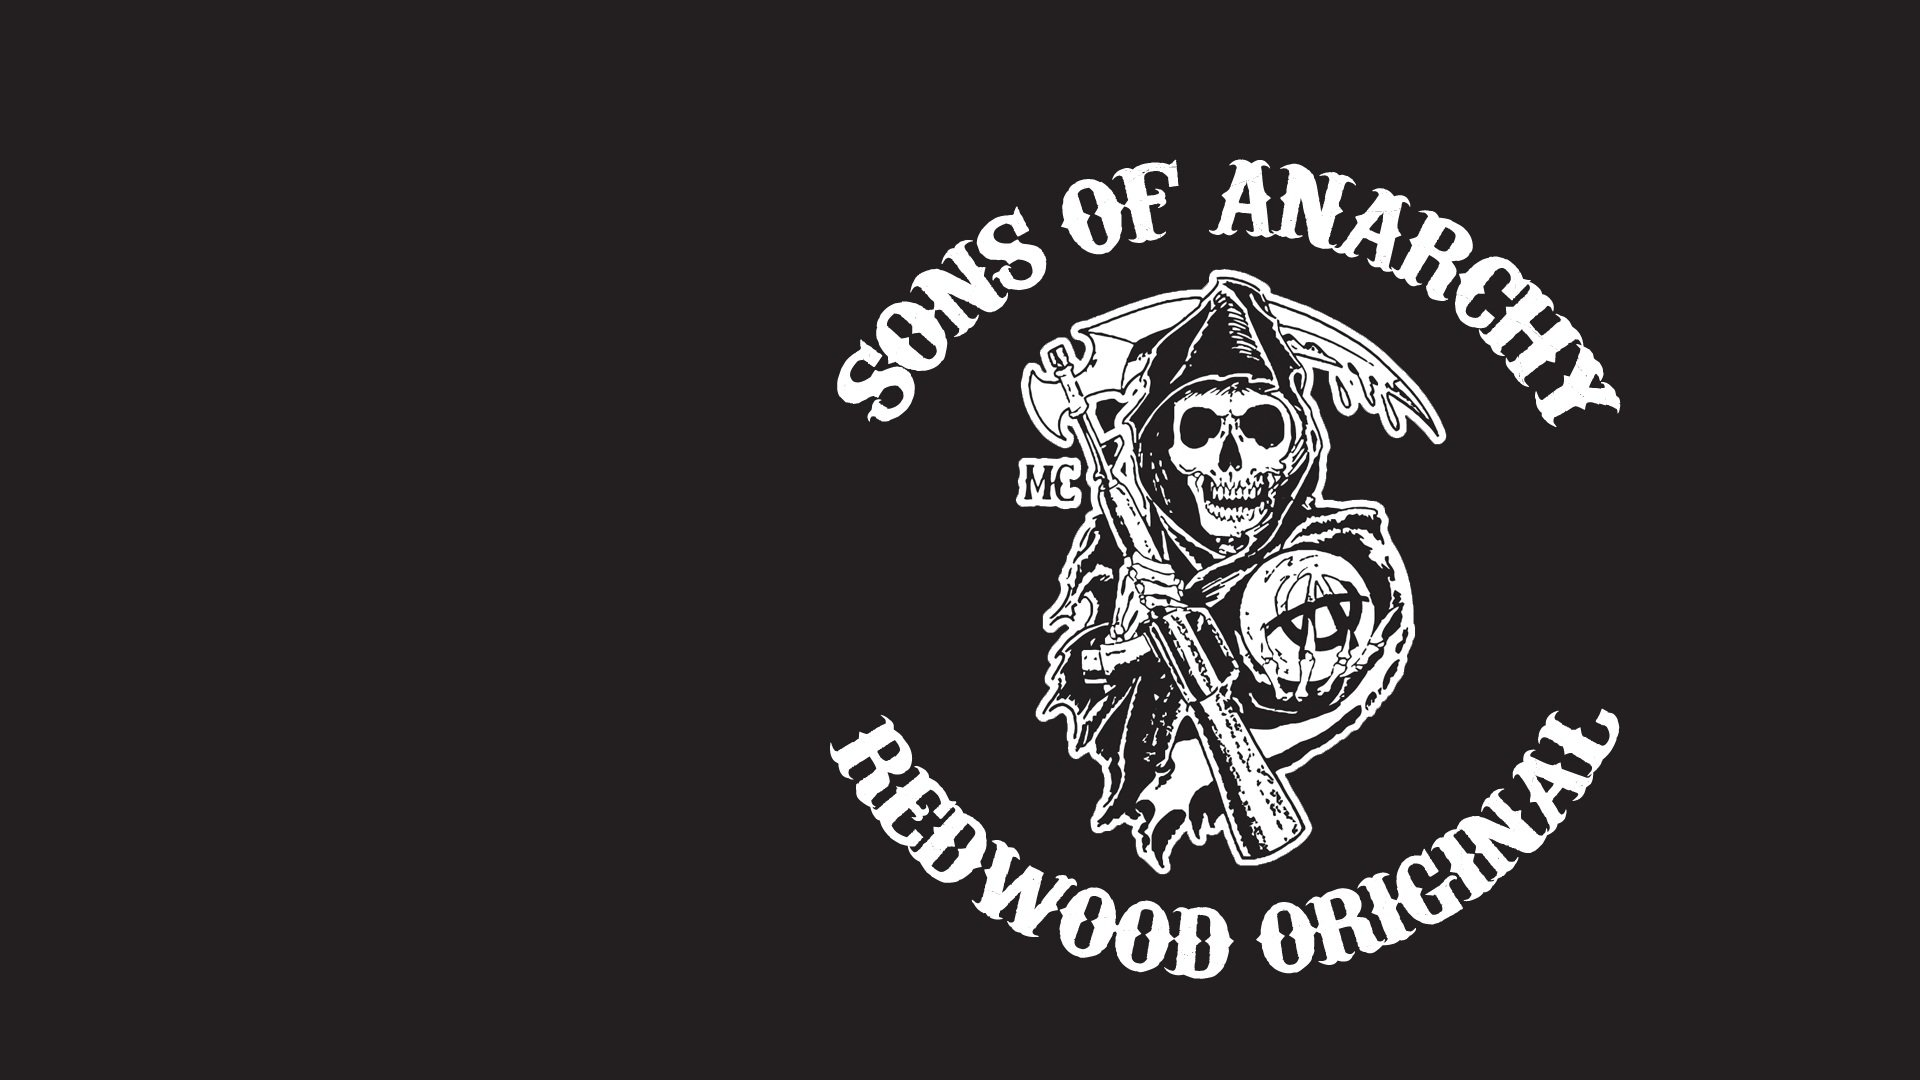 Sons Of Anarchy Wallpapers 1920x1080 Full Hd 1080p Desktop